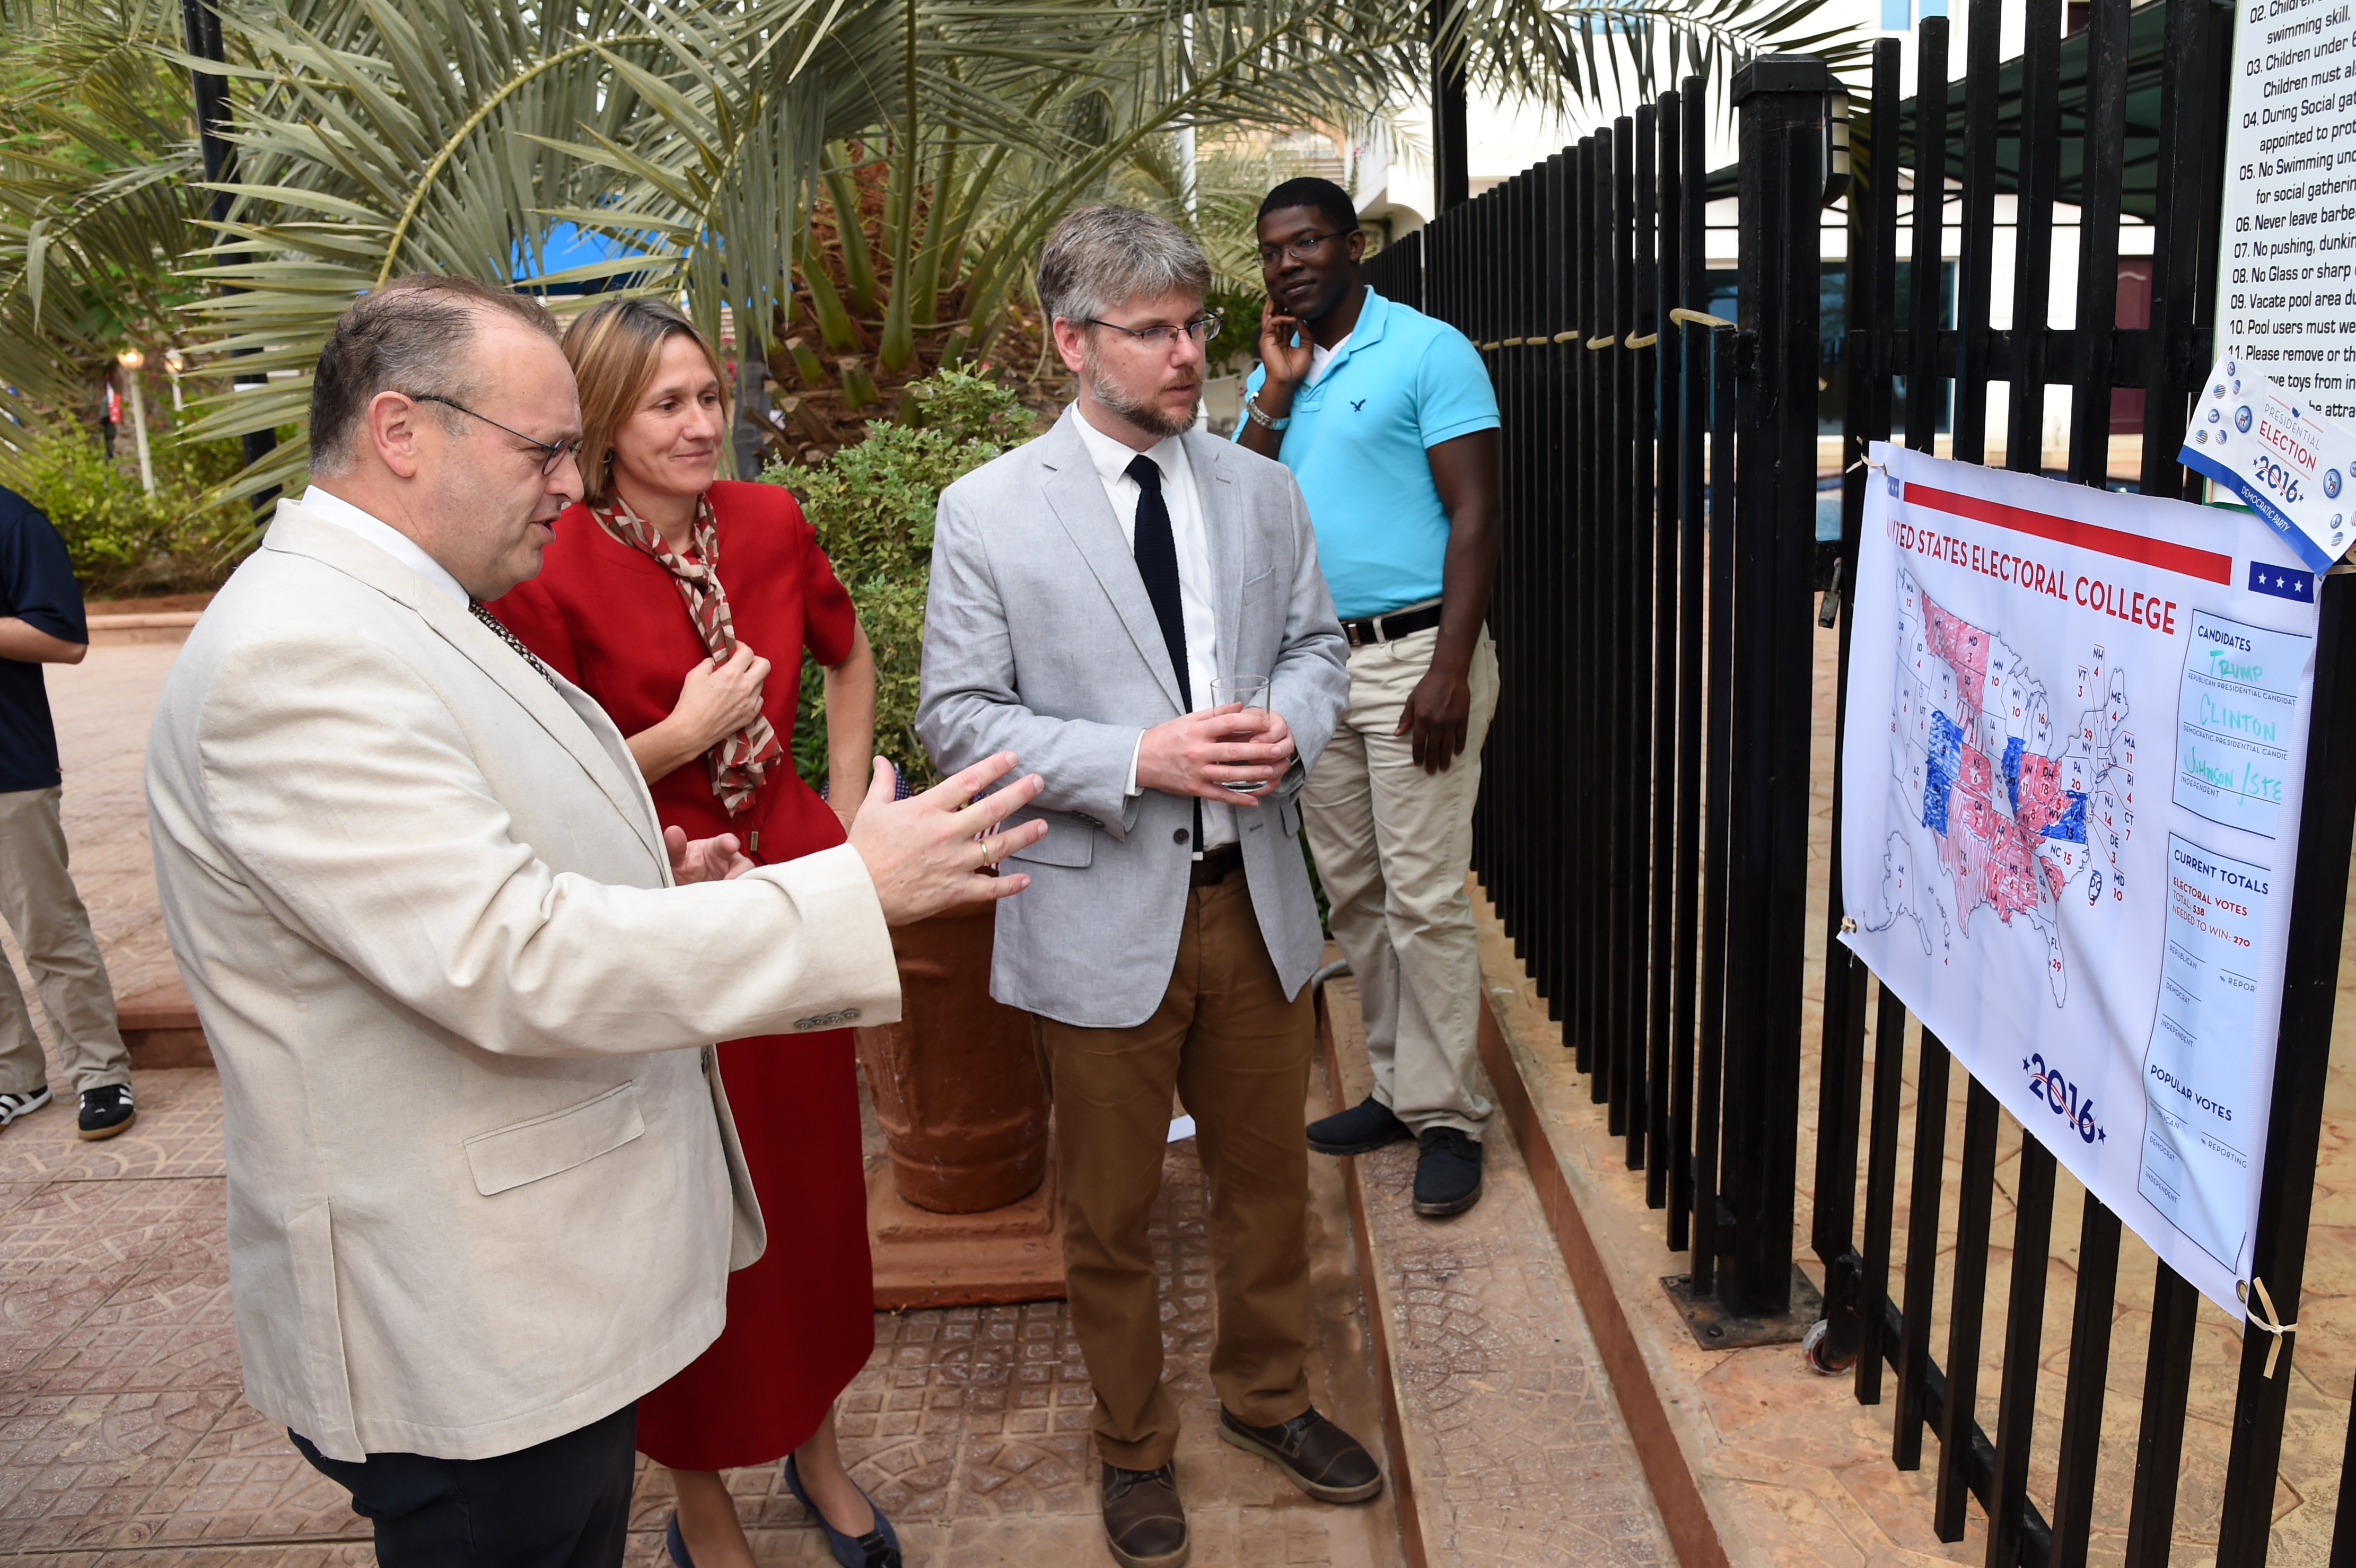 Guests of Thomas P. Kelly III, U.S. Ambassador to Djibouti, look at an electoral map during an Election Day breakfast at his home, Nov. 9, 2016, in Djibouti, Djibouti. The event allowed political leaders, American community members, youth leaders, and members of the business community to participate in a celebration of American values and traditions. (U.S. Air National Guard photo by Staff Sgt. Penny Snoozy)